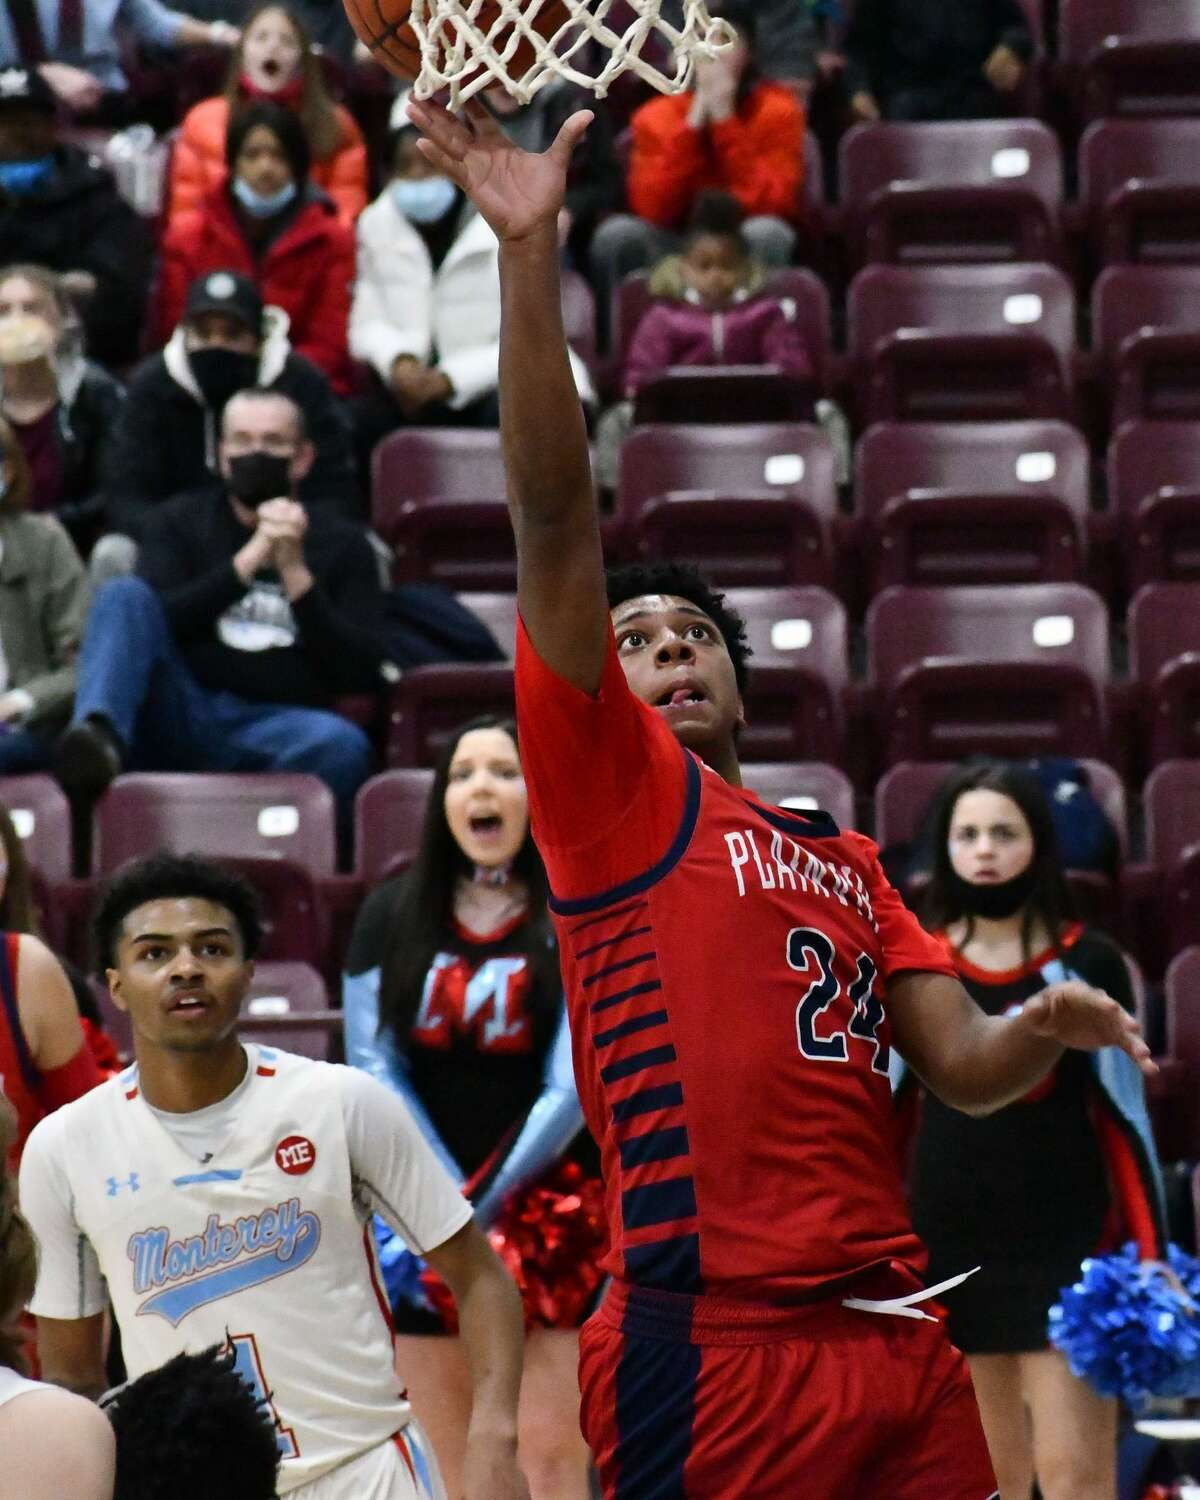 Jayvian Lawson had a team-high 17 points to pace the Bulldogs in the victory.